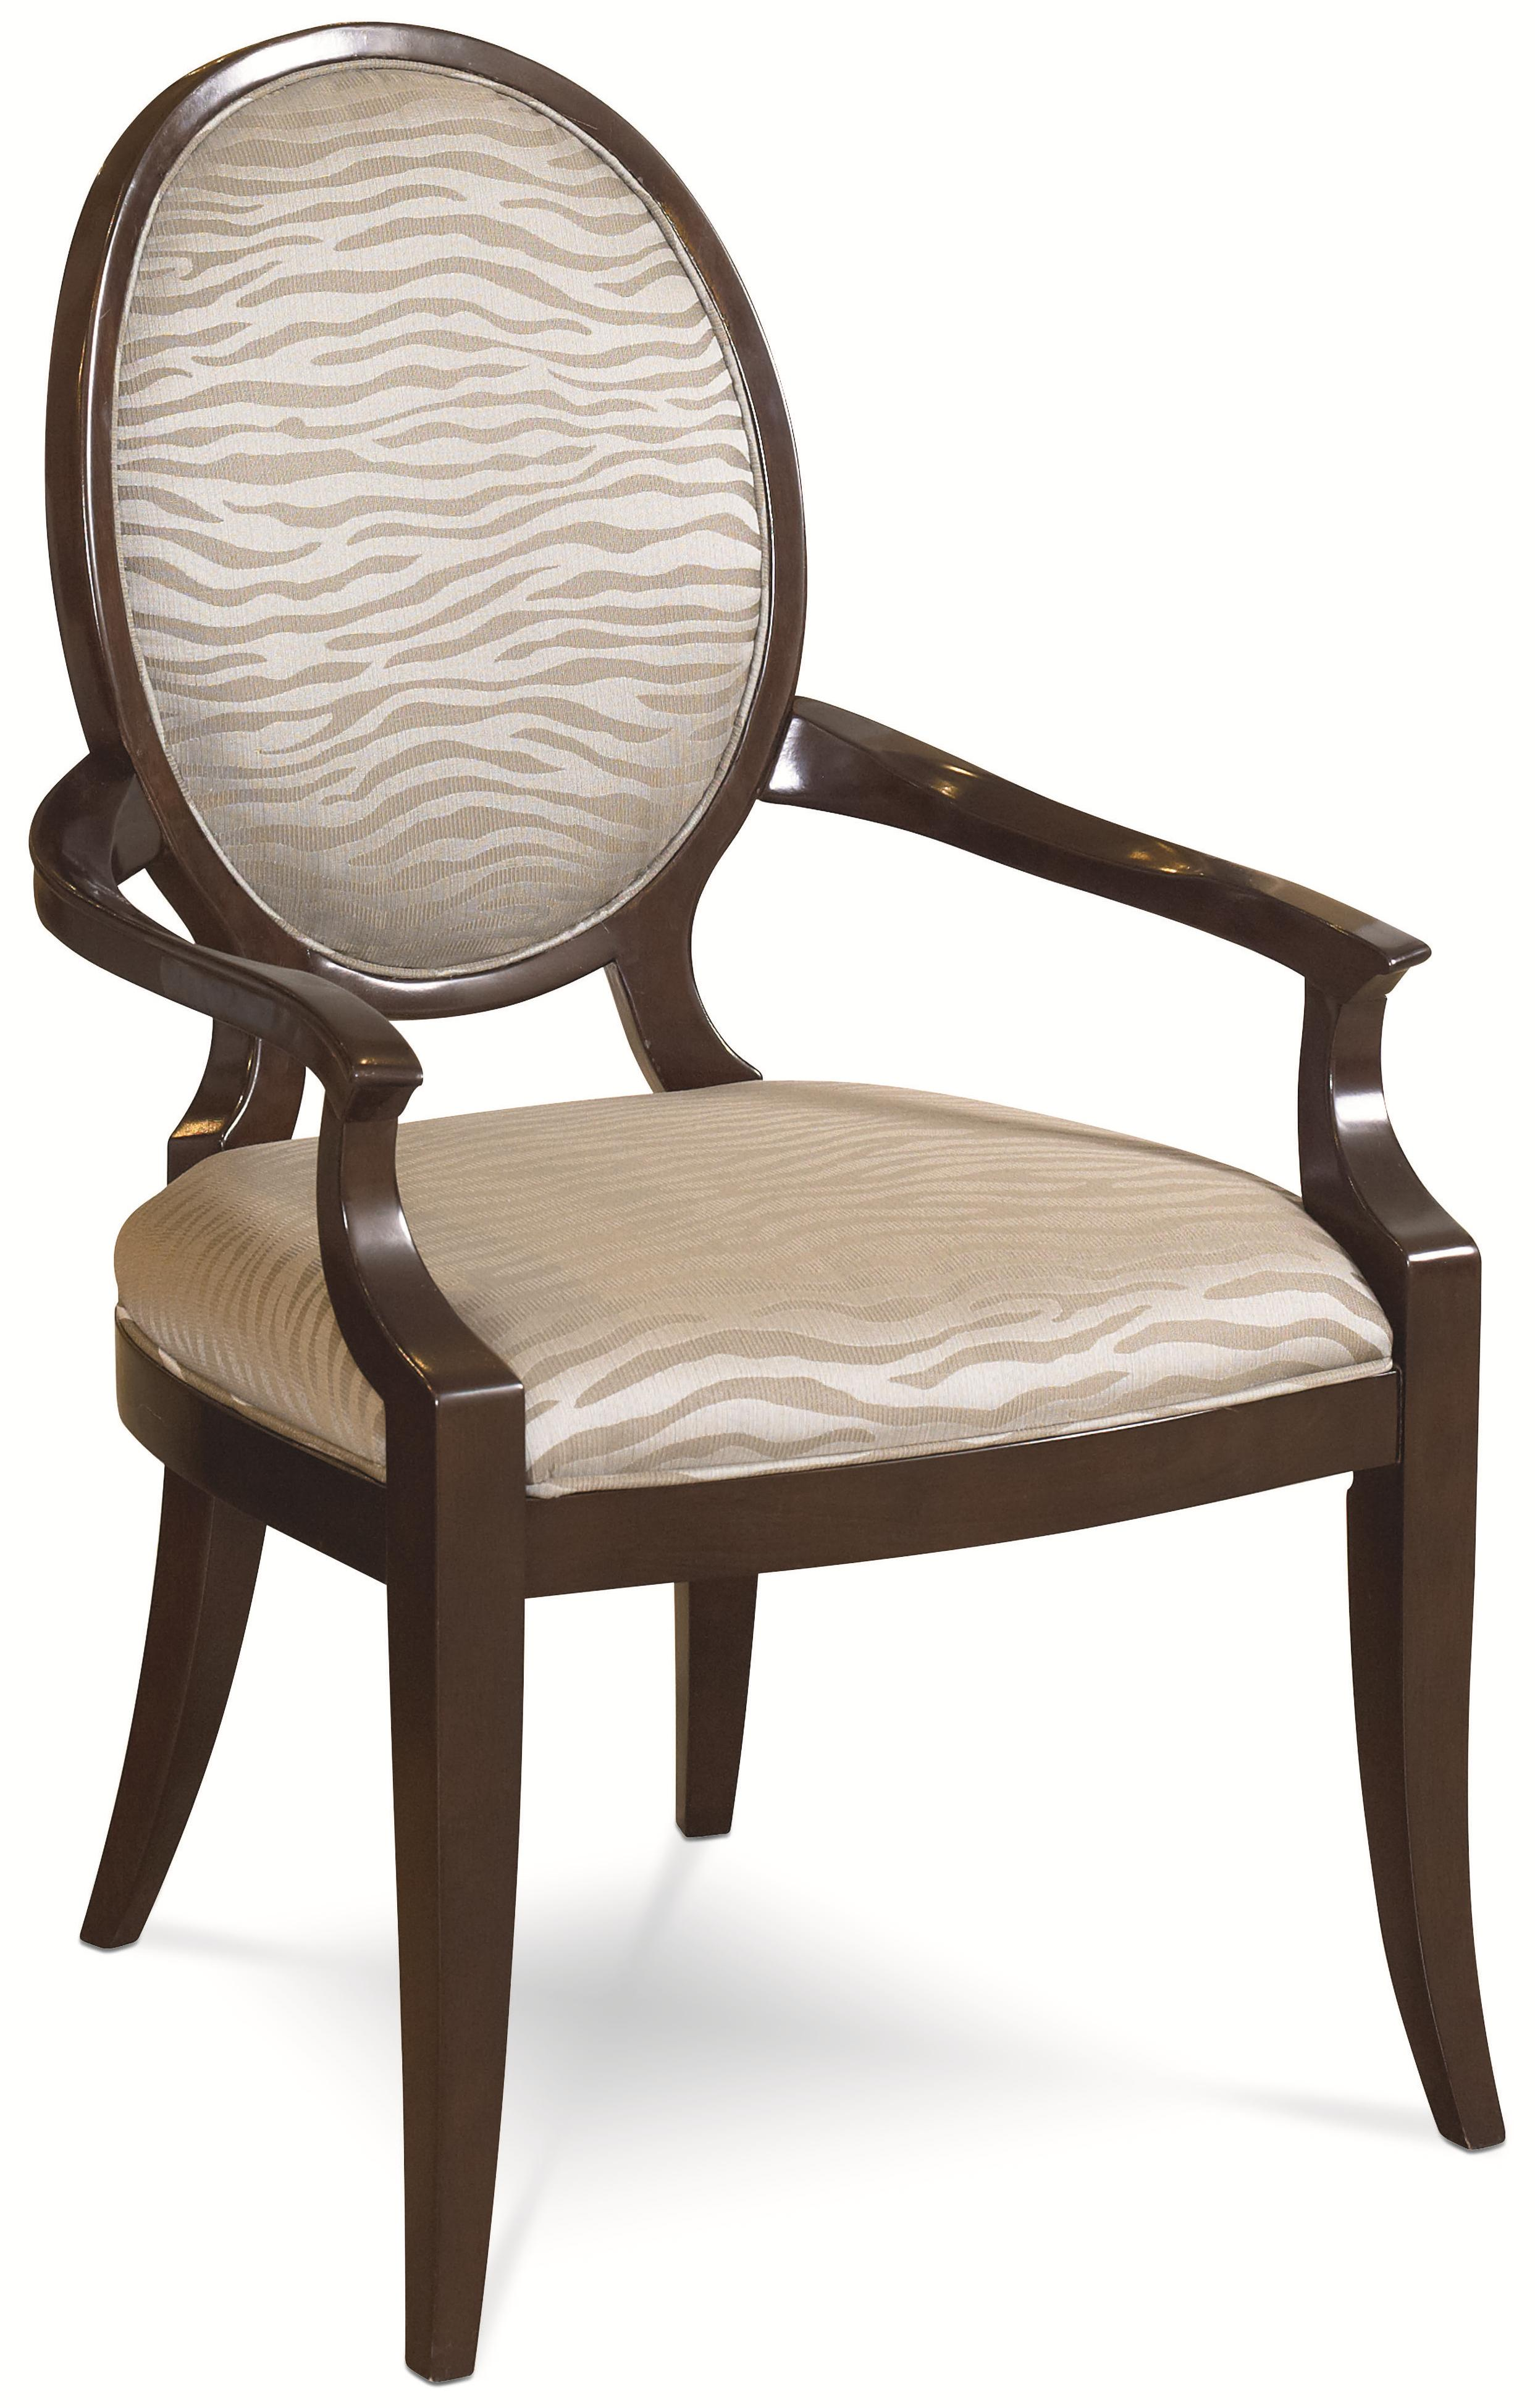 Thomasville® Spellbound  Upholstered Arm Chair - Item Number: 82221-882